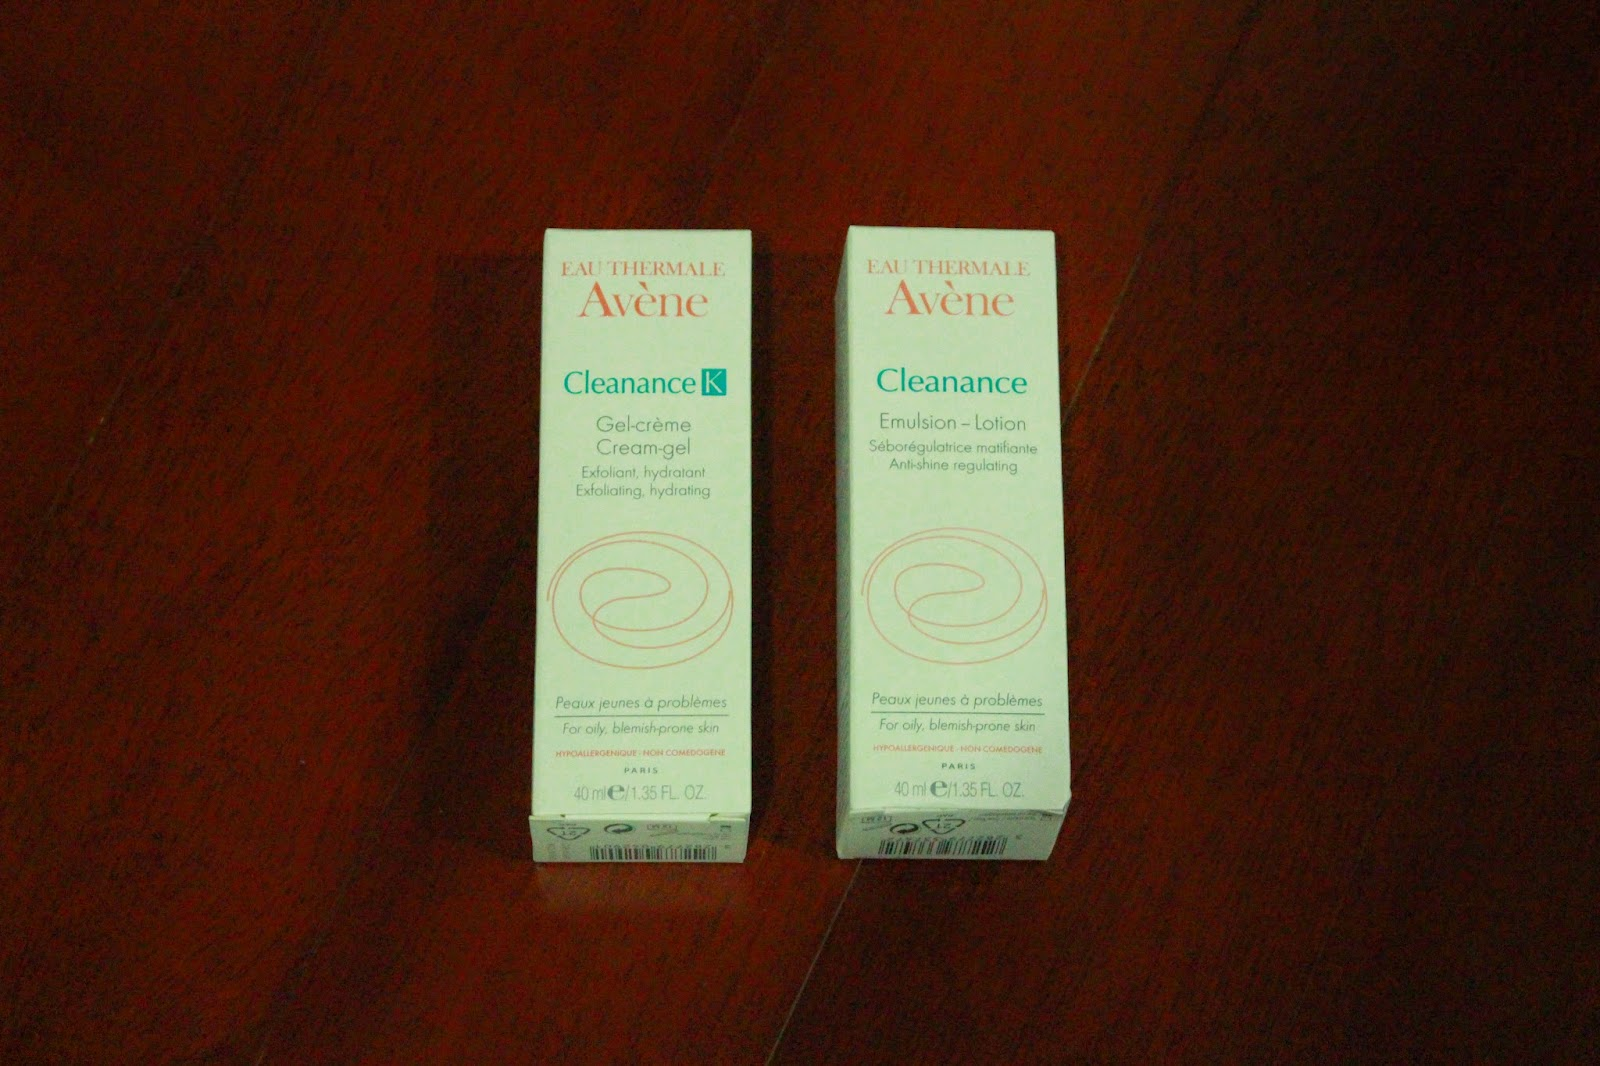 Avène Cleanance and Cleanance K creams